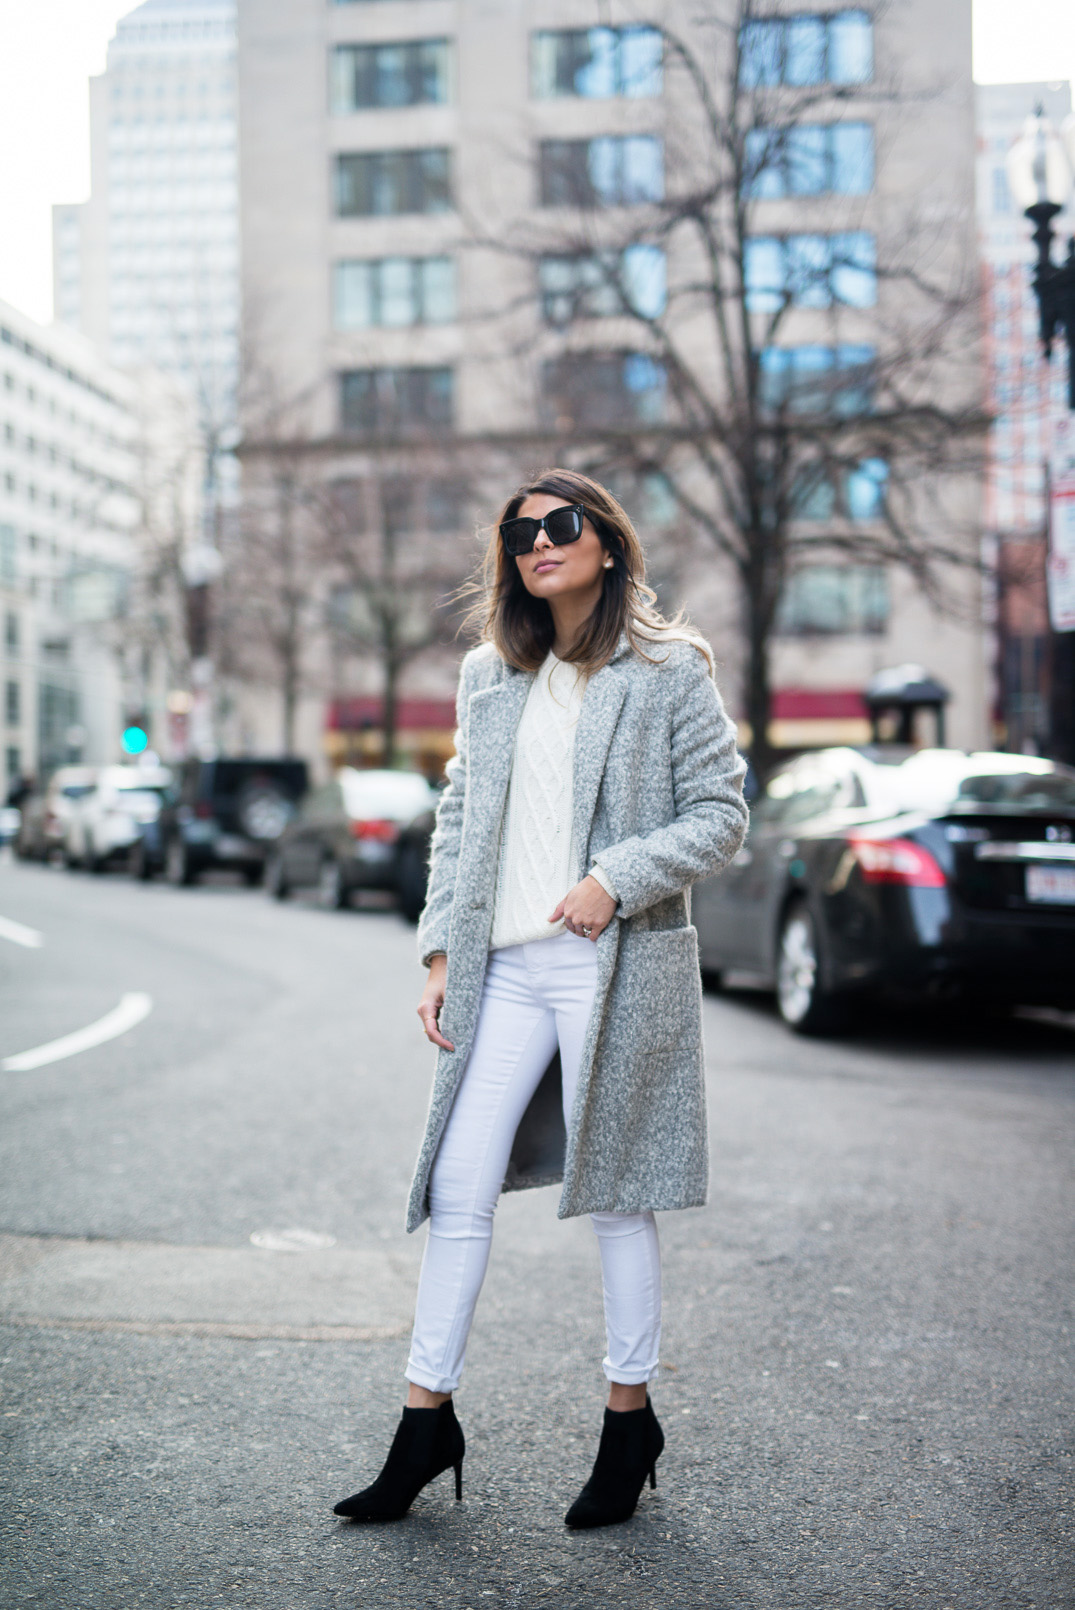 Pastel colours are in this season! Pam Hetlinger is a vision of winter freshness in this outfit, consisting of a cream knit sweater, pale blue jeans, and a fuzzy grey overcoat. Coat: Zac Posen, Boots: Rachel Zoe, Jeans: Frame.